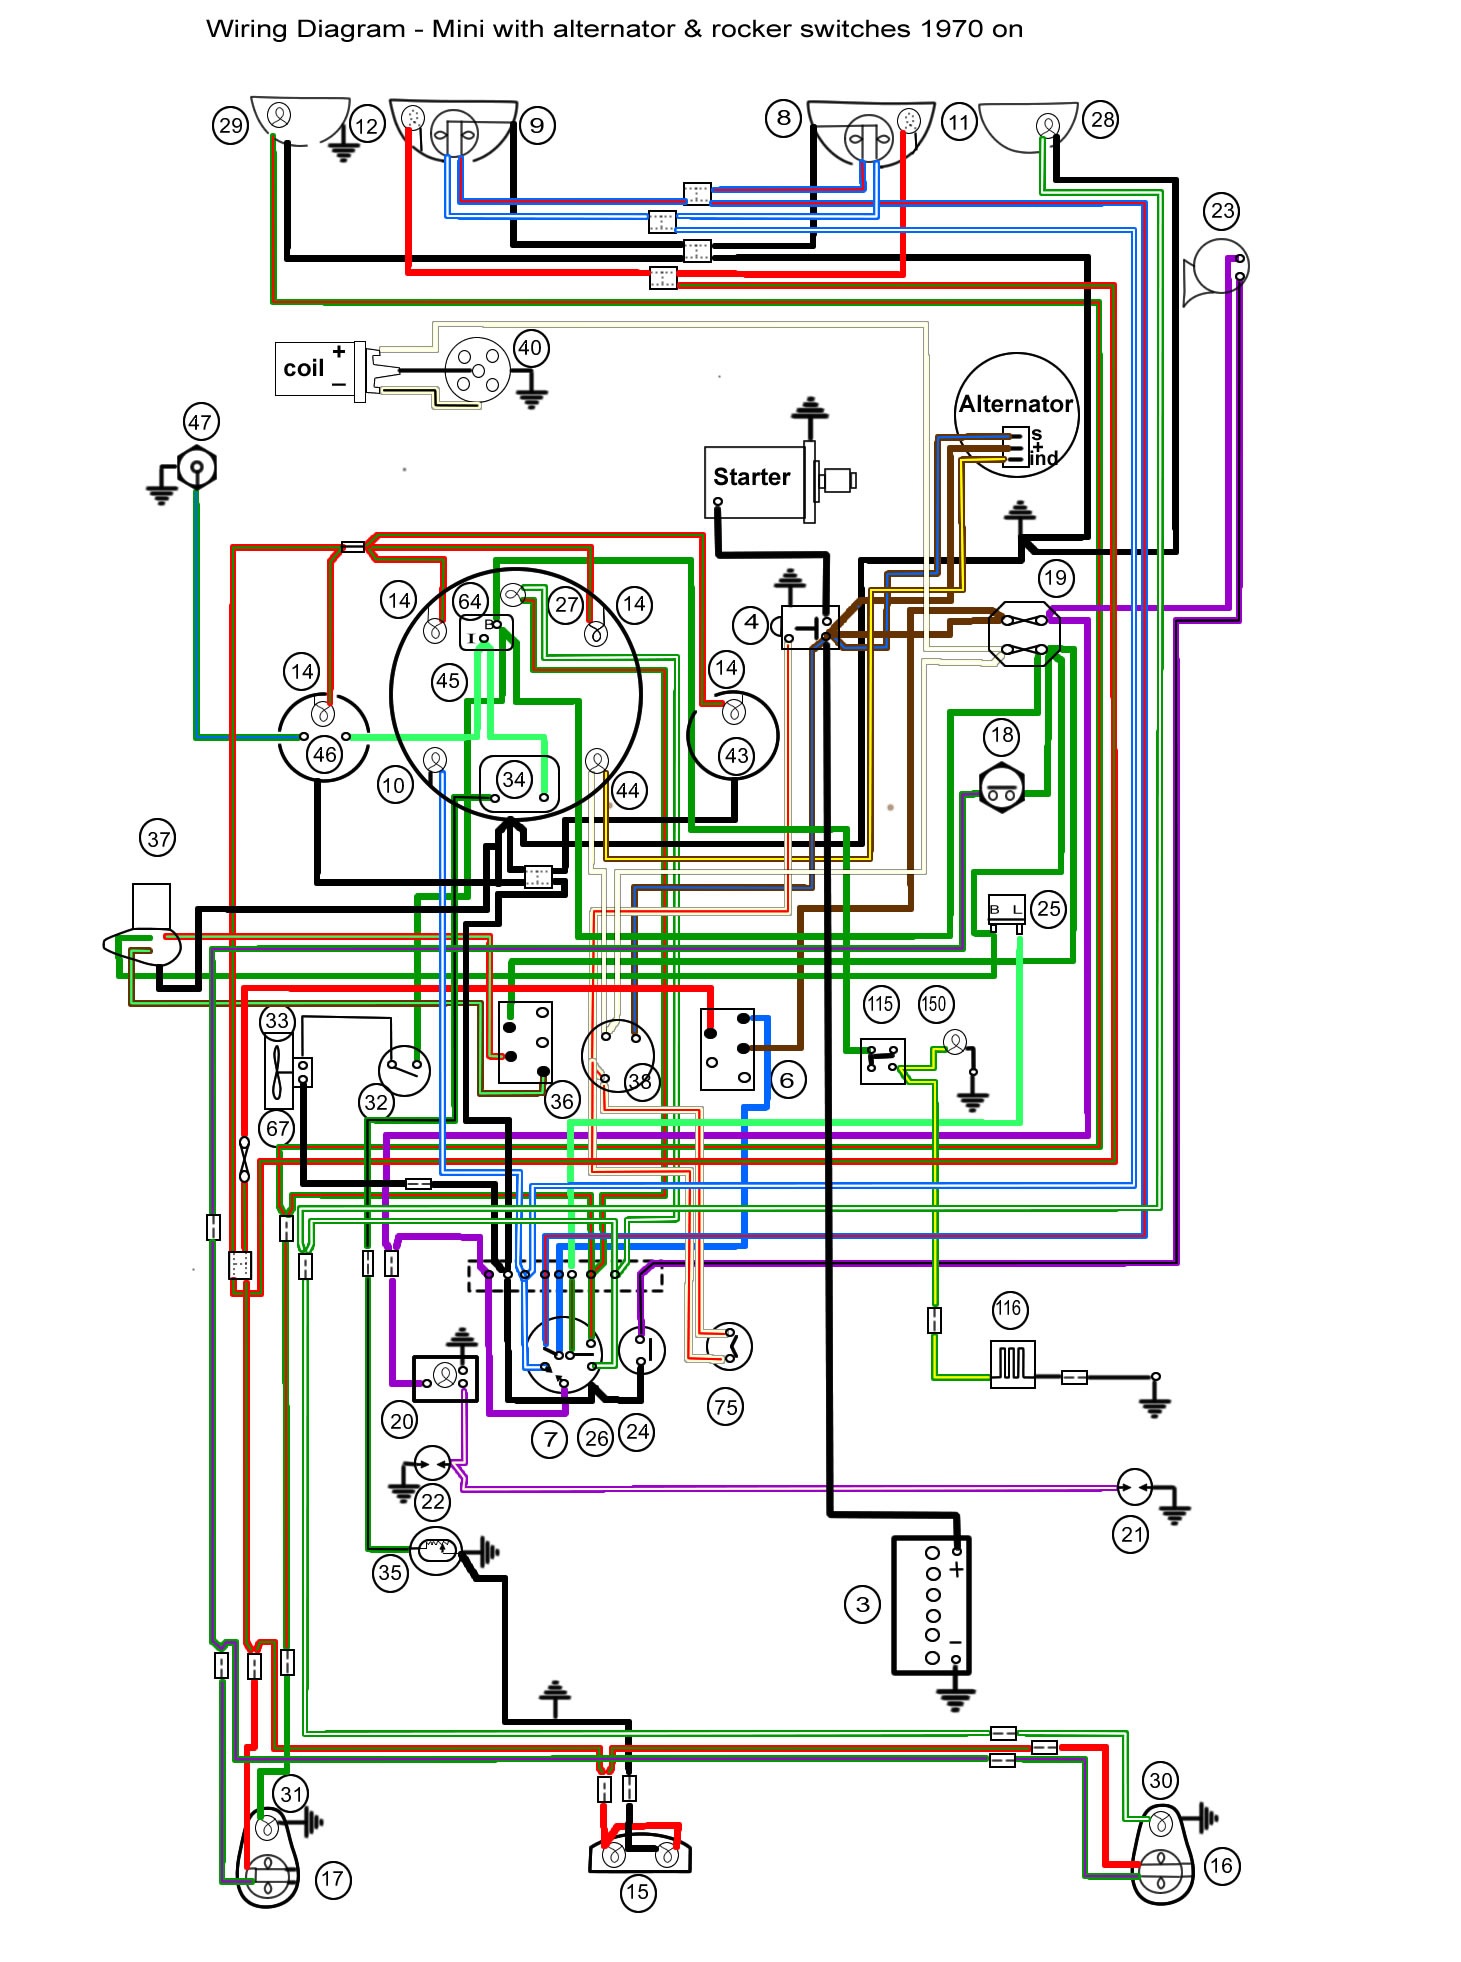 Rover Wiring Diagram Diy Enthusiasts Diagrams Range Fuse Box Private Sharing About Minifinity The Classic Mini Forum And Resource U2022 View Topic Colour Land 75 Body Electrical